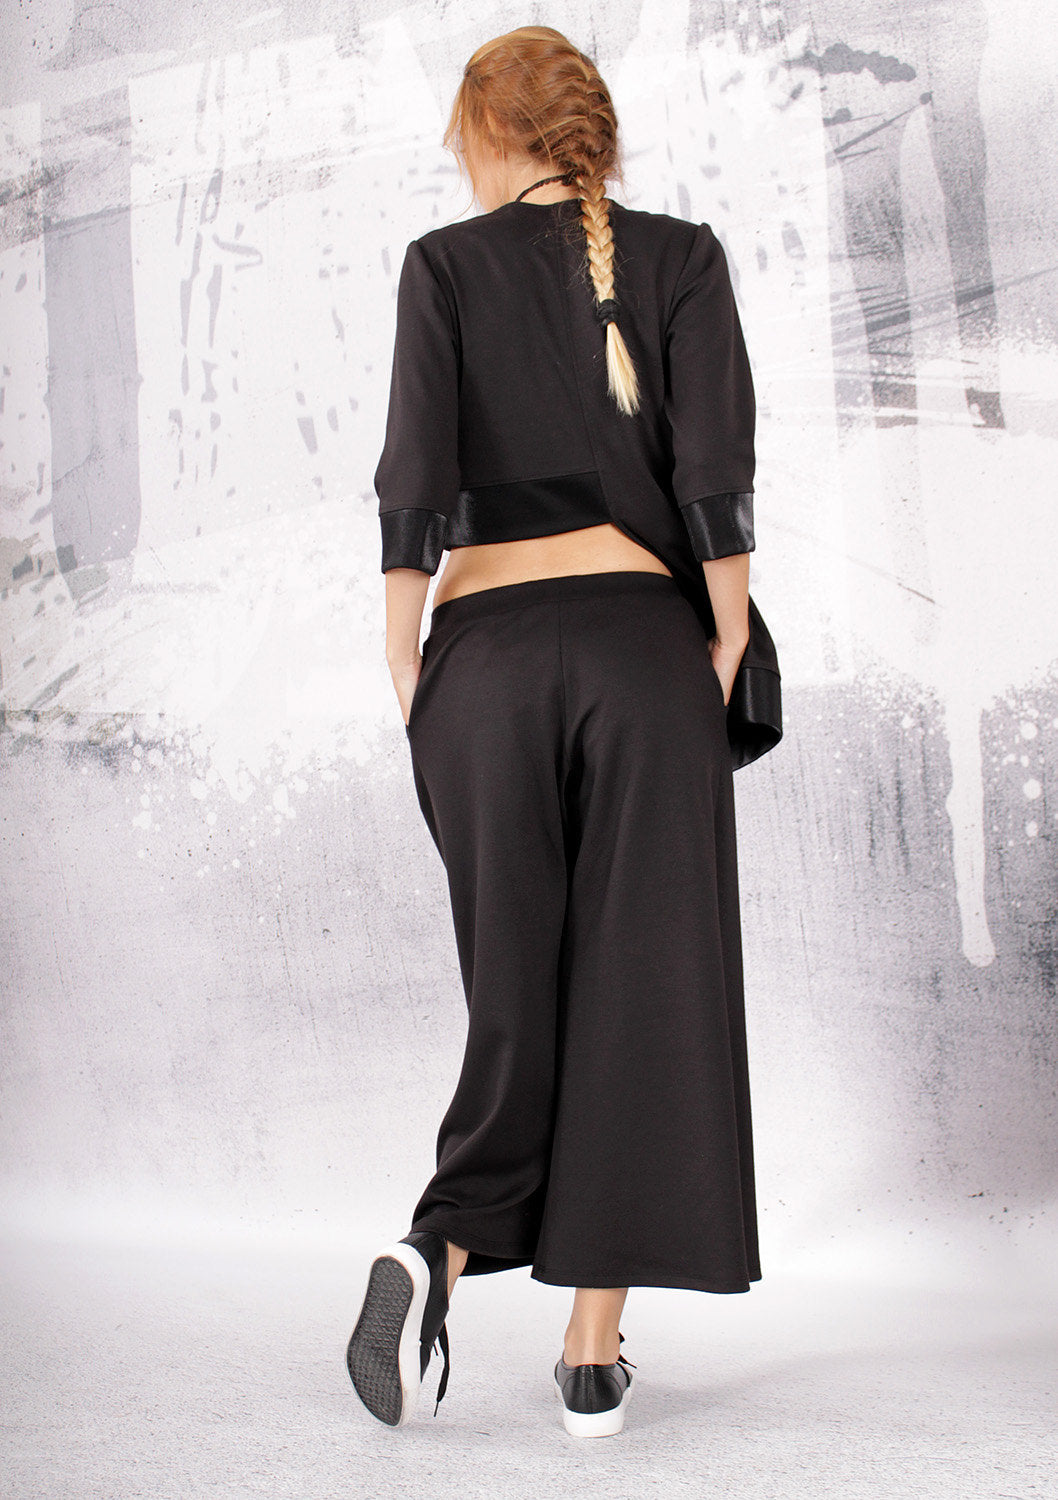 Pants, Black pants, wide skirt pants, 7/8 wide pants, ankle length pants by UrbanMood - UM-067-VL